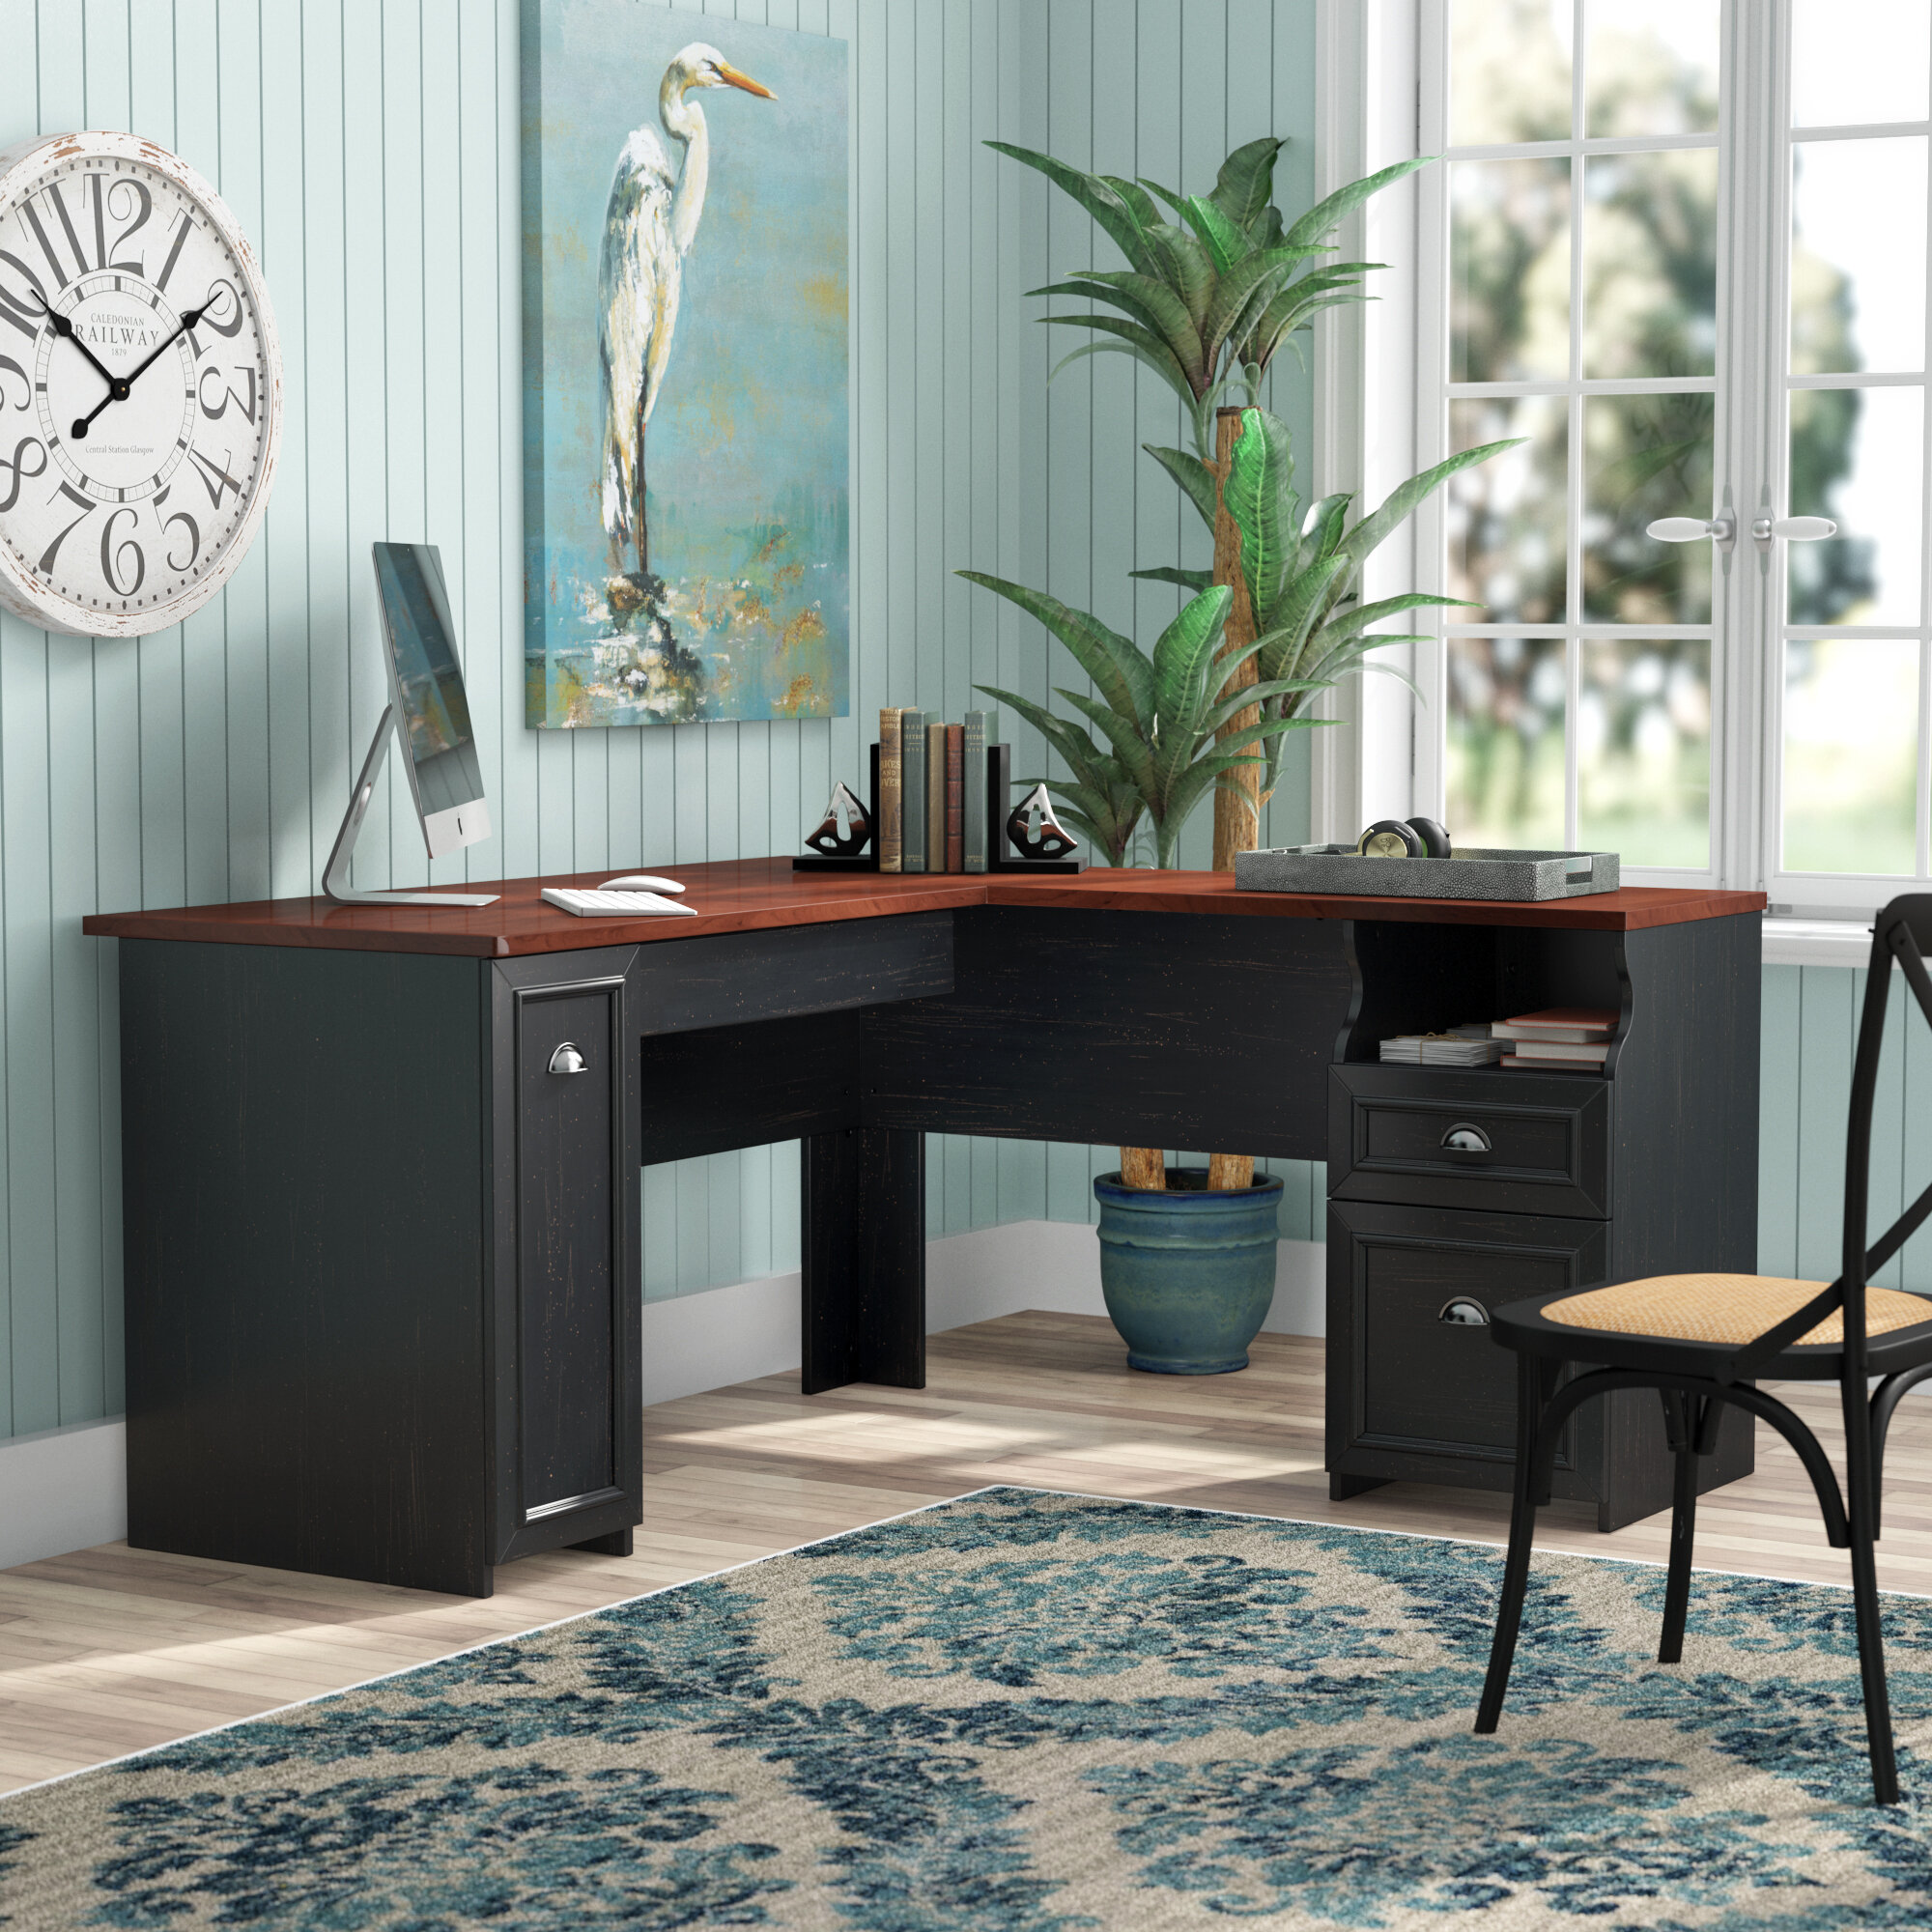 shaped office with desks desk workstation image products ca tray keyboard computer homcom aosom l